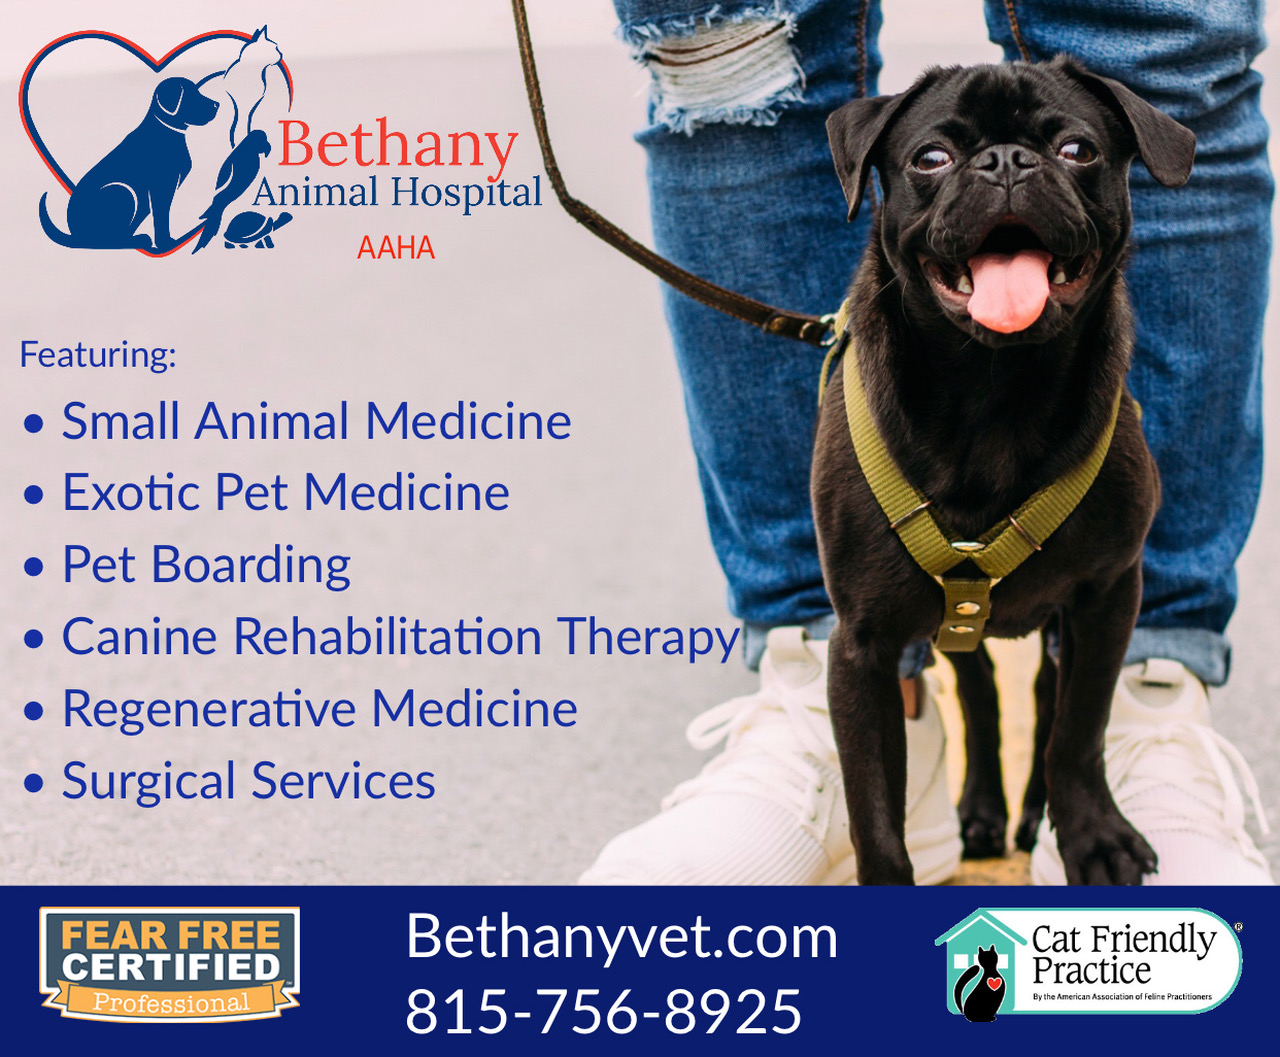 bethany animal hospital, animal clinic, veterinary, veterinary hospital, vet, dr, exotic, pets, cat, dog, rabbit, snake, ginny pig, turtle, canine rehabilitation, therapy, boarding, kennel, pet care, pet sitting, dog walking, cat boarding, carlos dominguez, heather brown, melissa corson, deb schelkopf, leann gruber, pet medicine, medical, dentals, surgery, orthopedic, spay, neuter